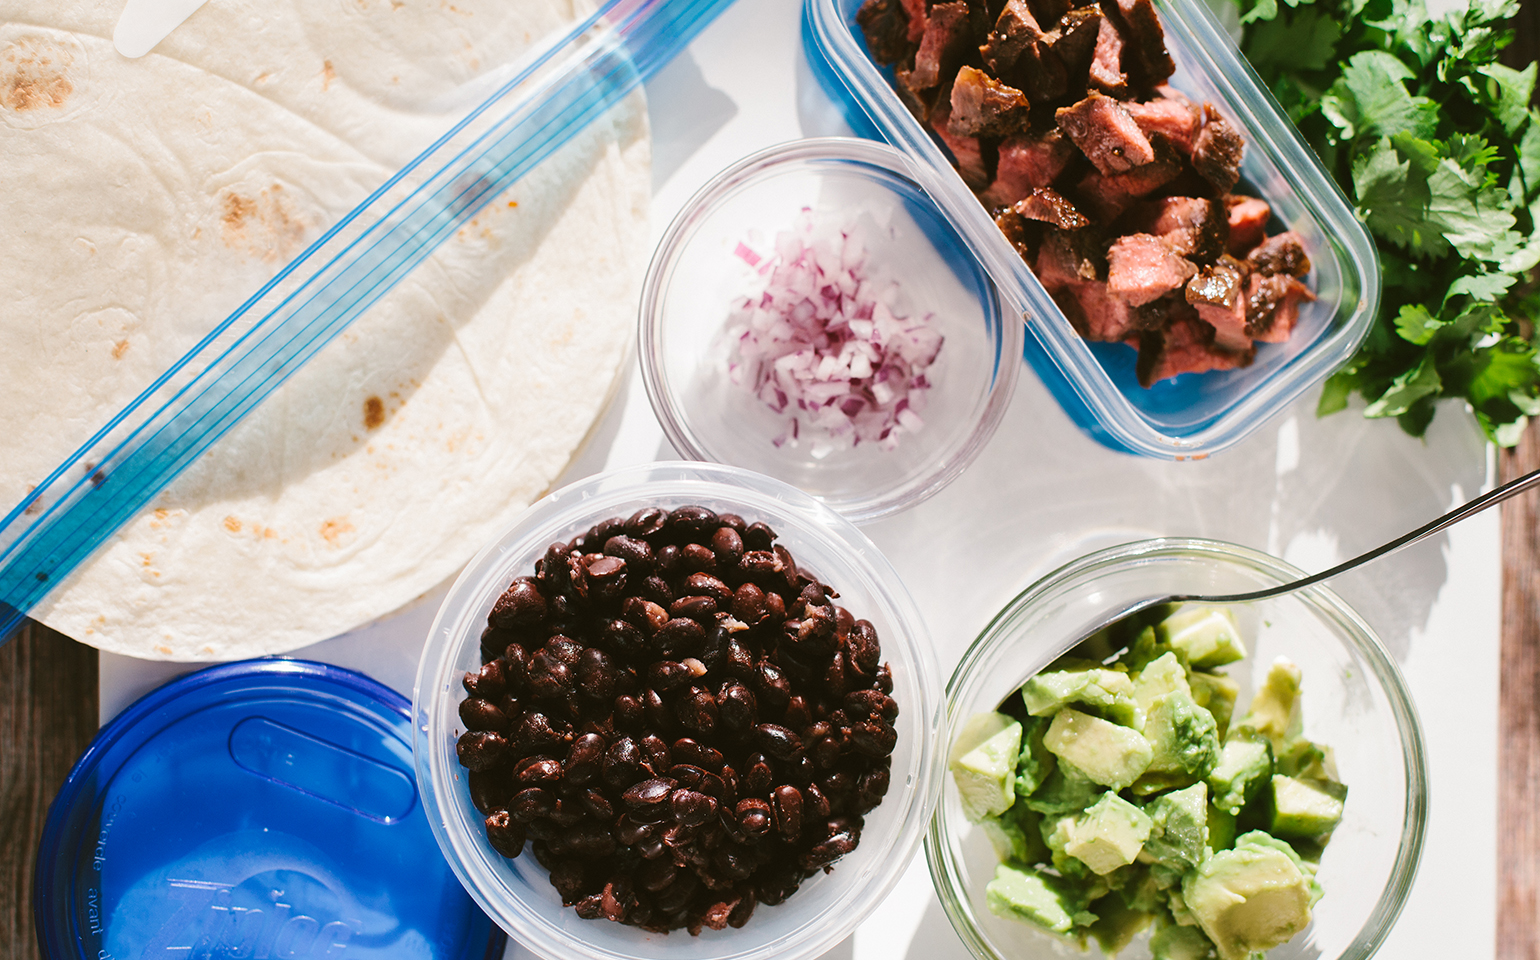 Steak and Black Bean Burritos with Red Onion and Avocado